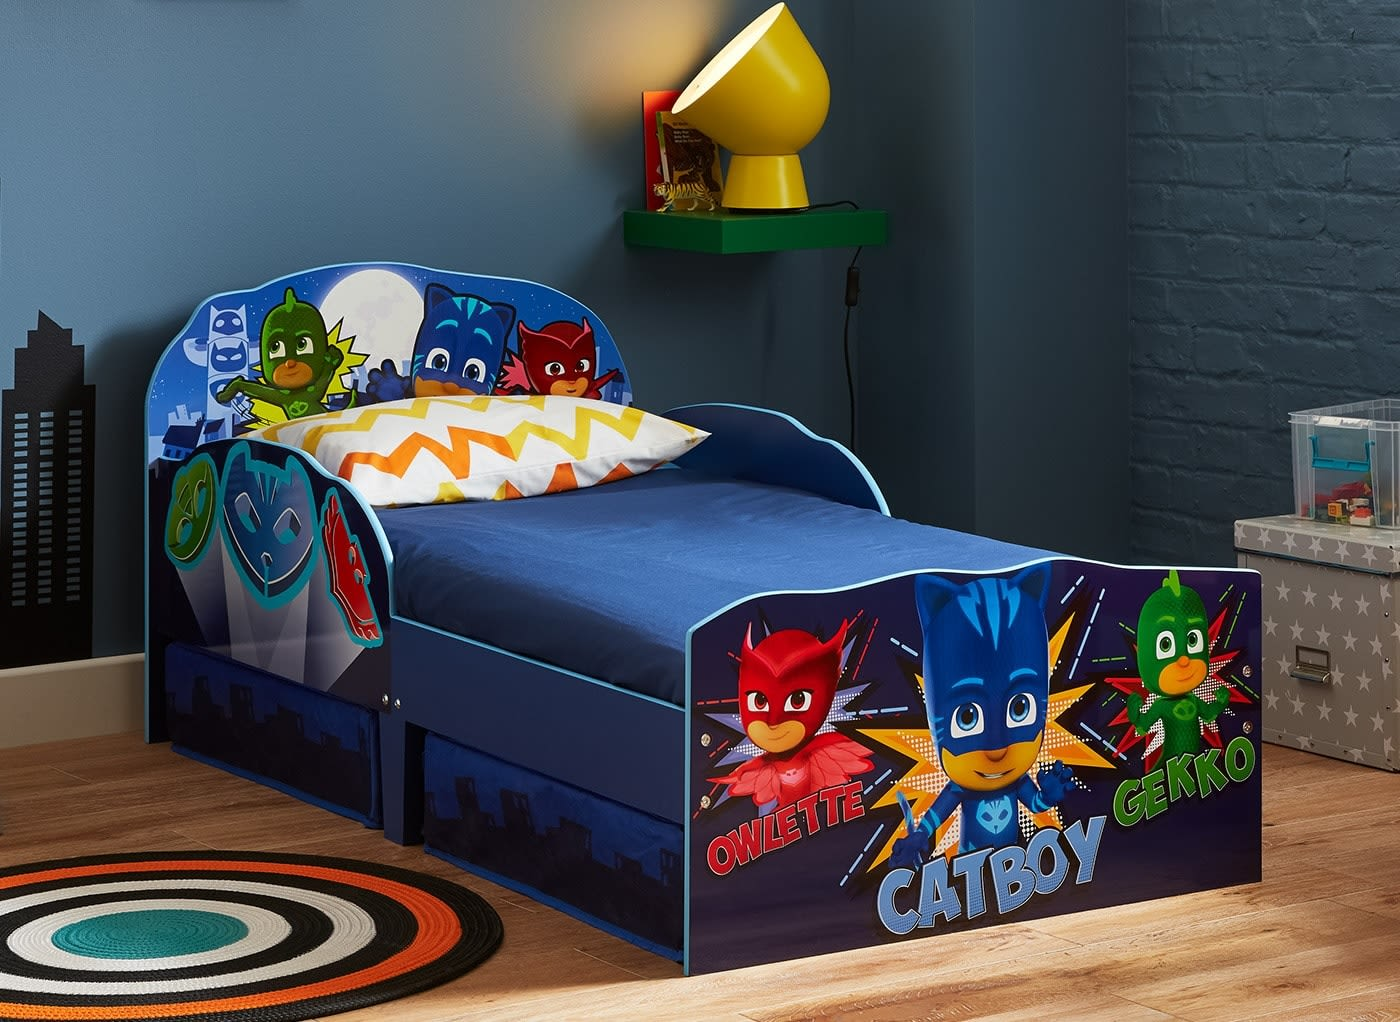 Pj Masks Toddler Bed With Storage 2 6 Small Single Blue